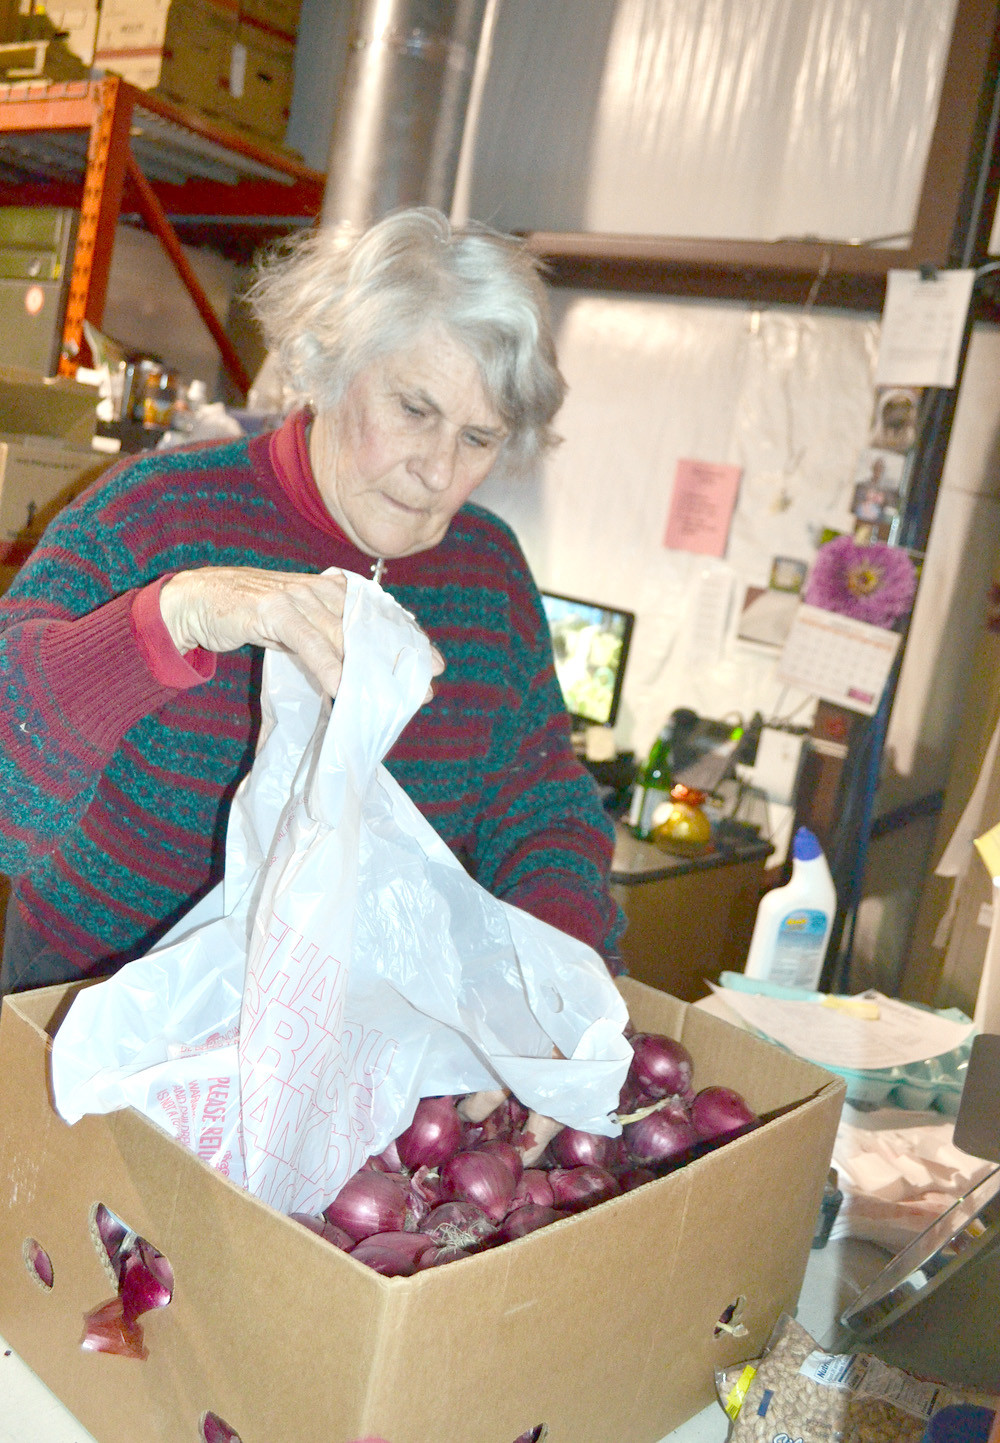 AILENE ASPRODITES prepares red onions at The Caring Place.